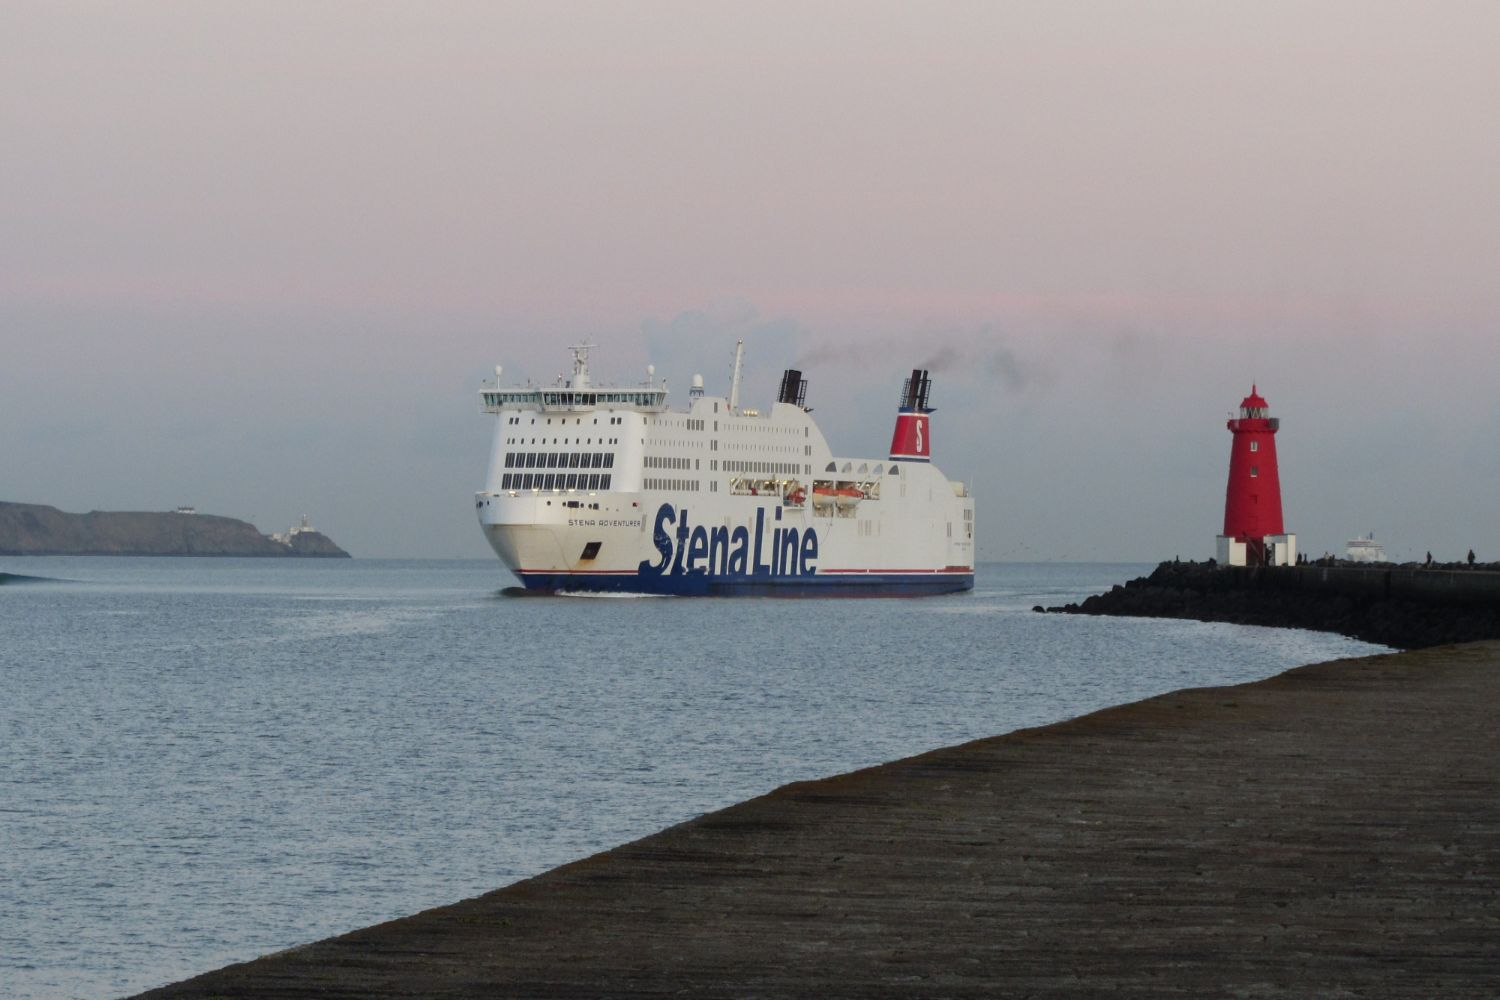 Stena car-ferry approaching Dublin port